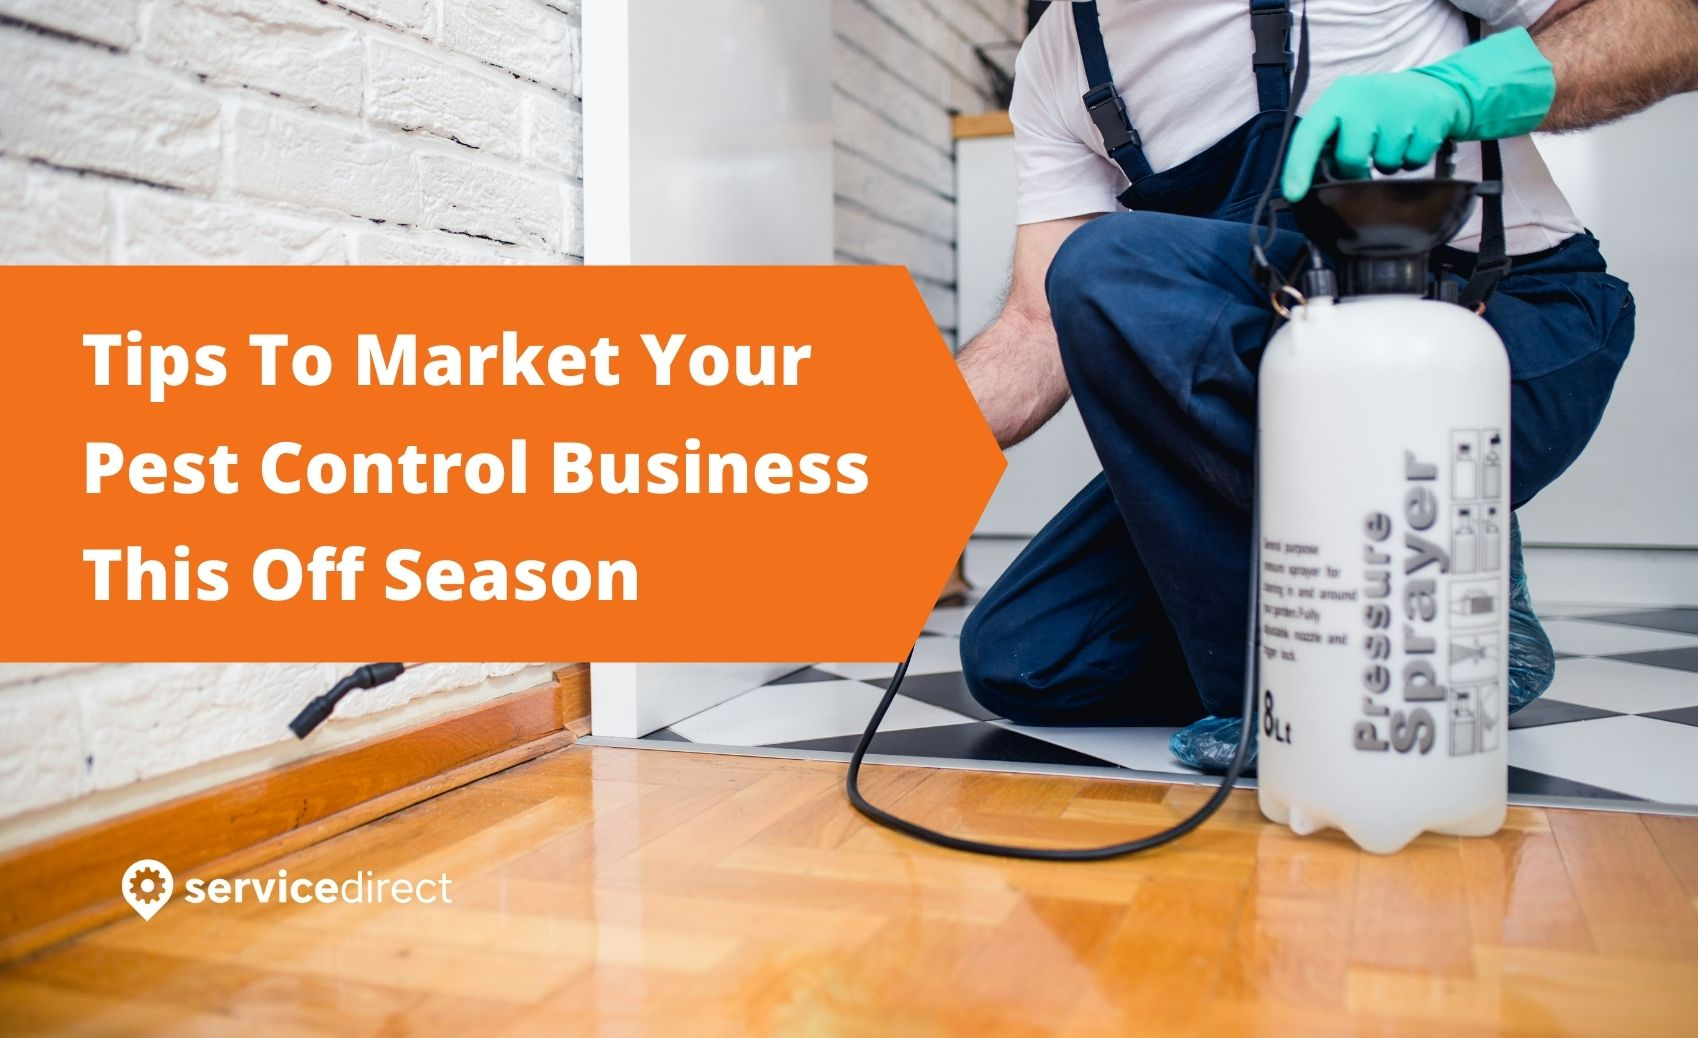 7 Sales Ideas To Market Your Pest Control Business This Off Season